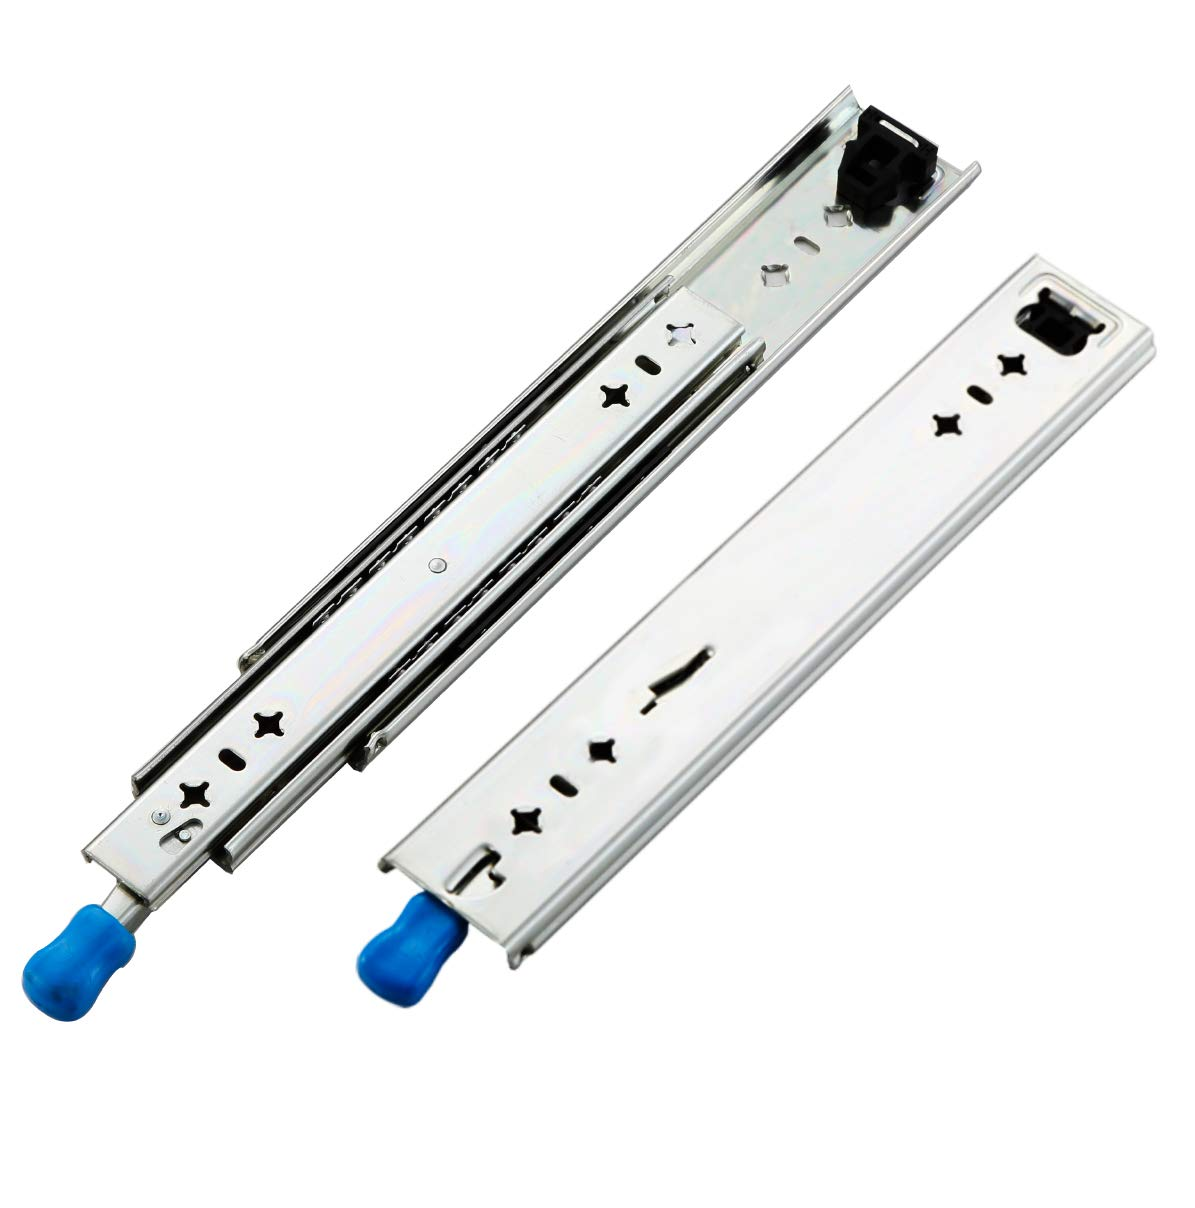 VADANIA Heavy Duty Drawer Slides, 12 Inch with Lock, Full Extension Ball Bearing, 1-Pair